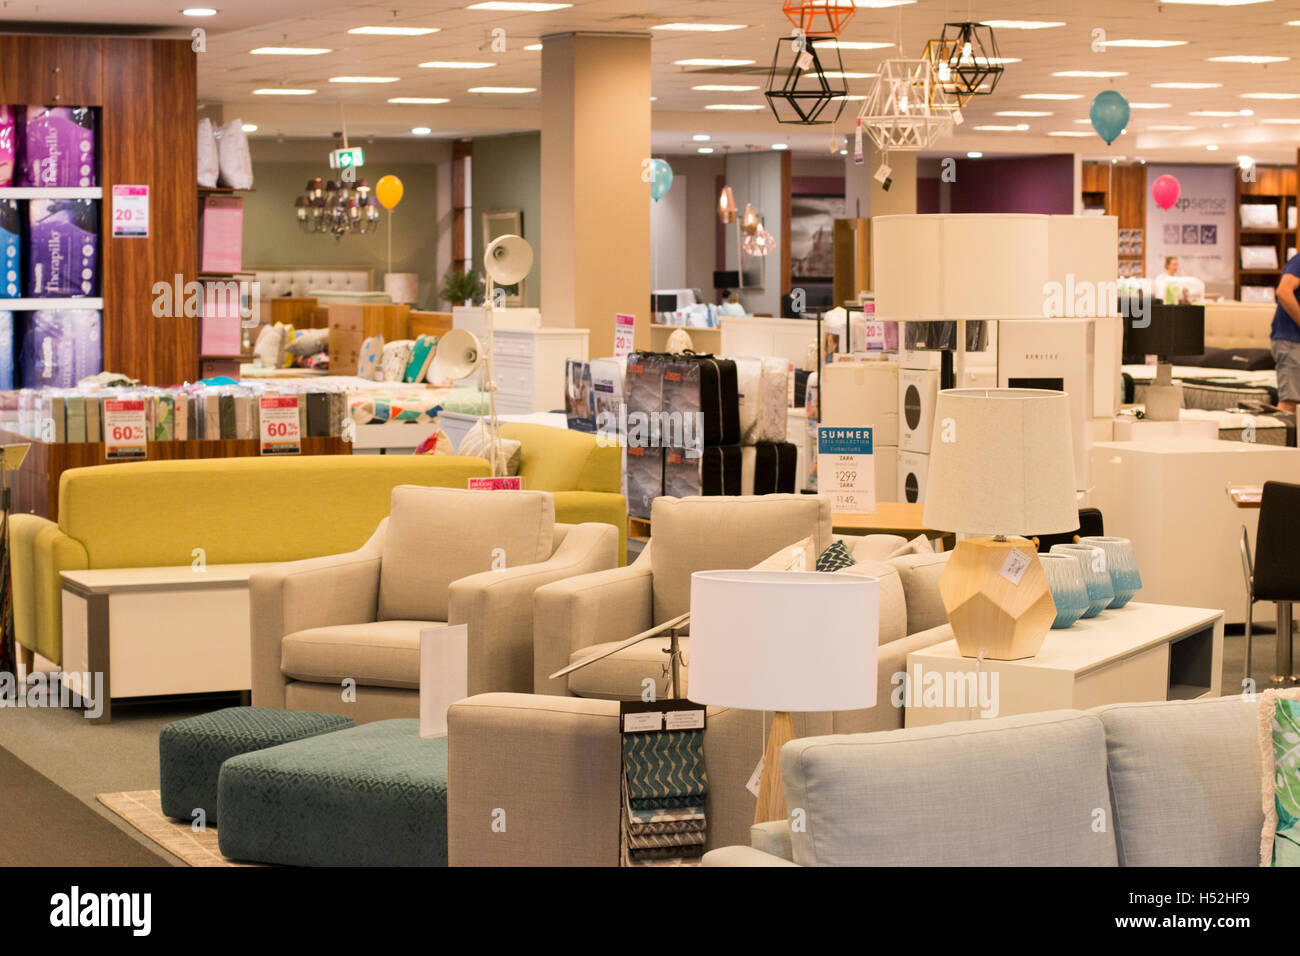 Interior of a harvey norman retail store selling furniture and electrical itemssydneyaustralia